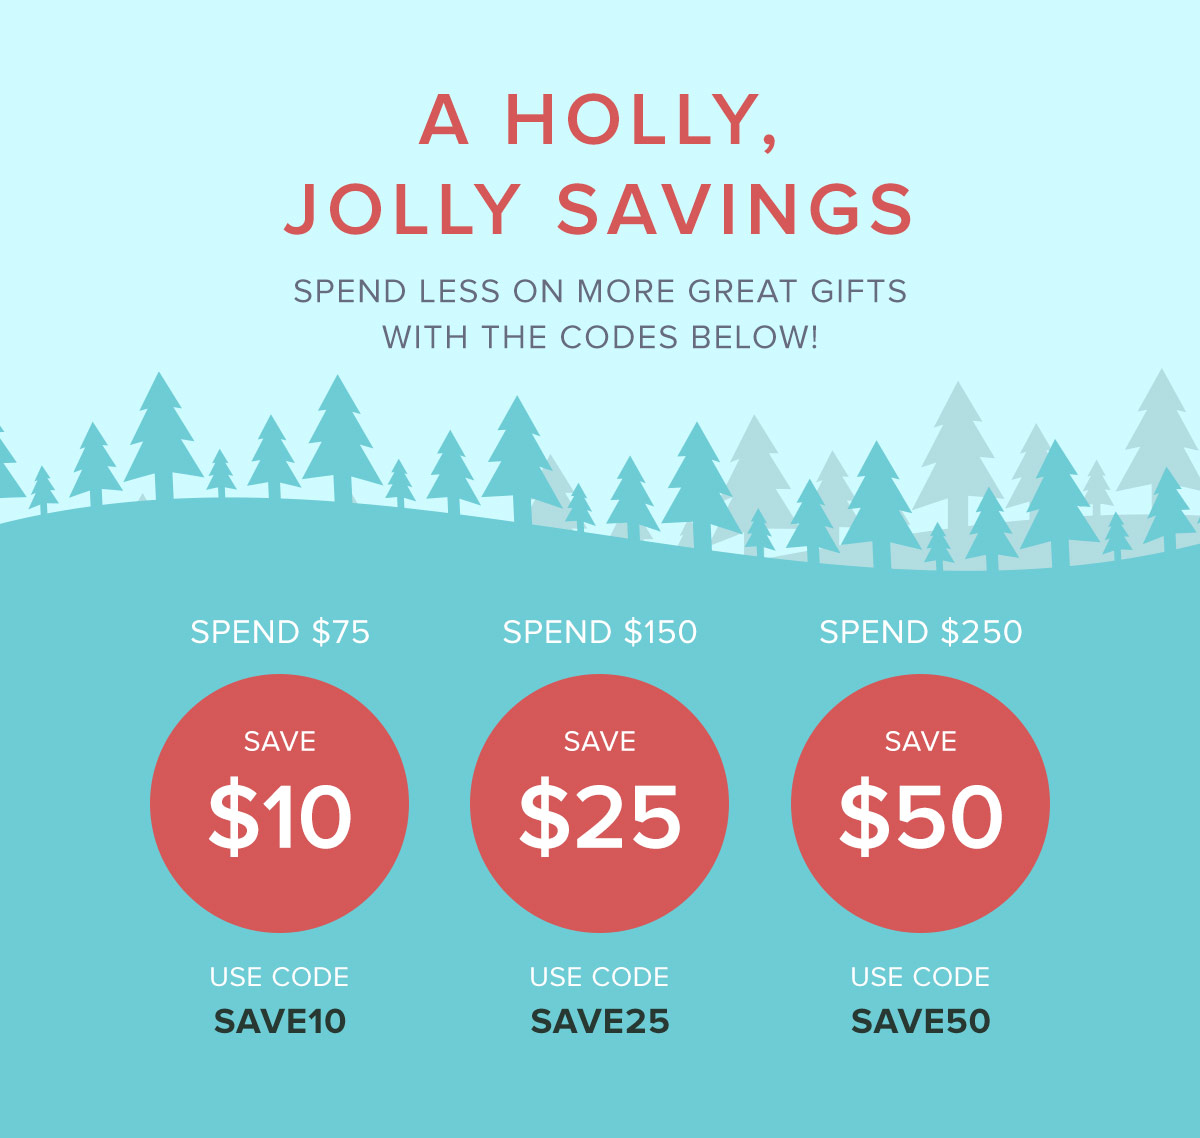 Holly Jolly Savings